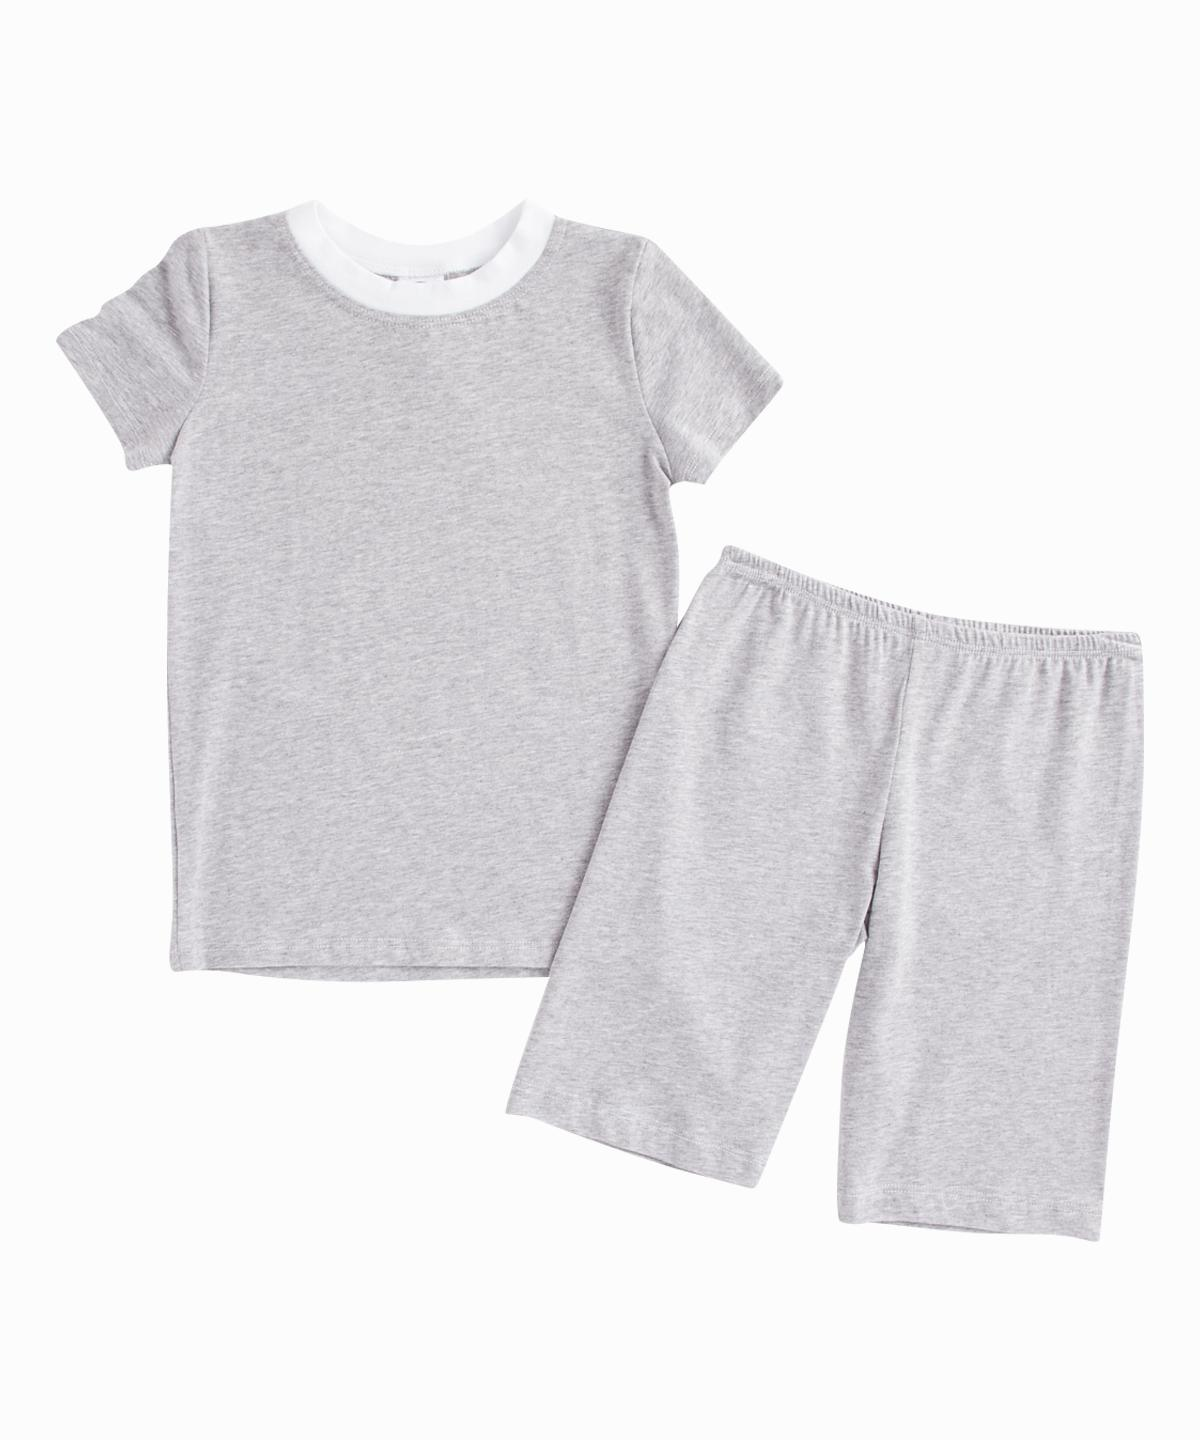 Grey Tee and Shorts PJ Set